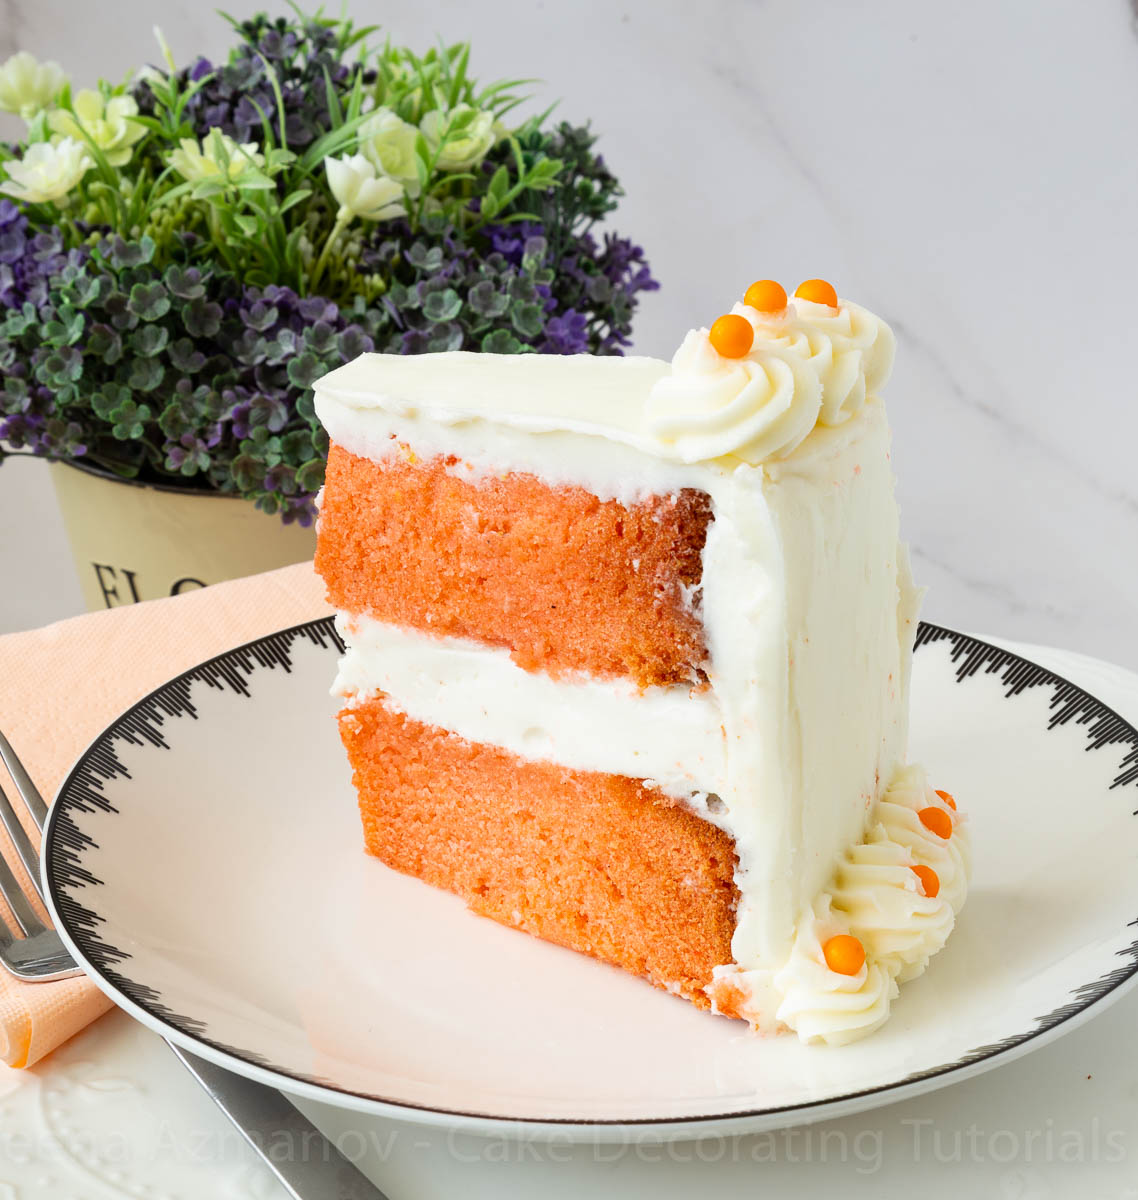 A slice of orange layer cake on a plate.